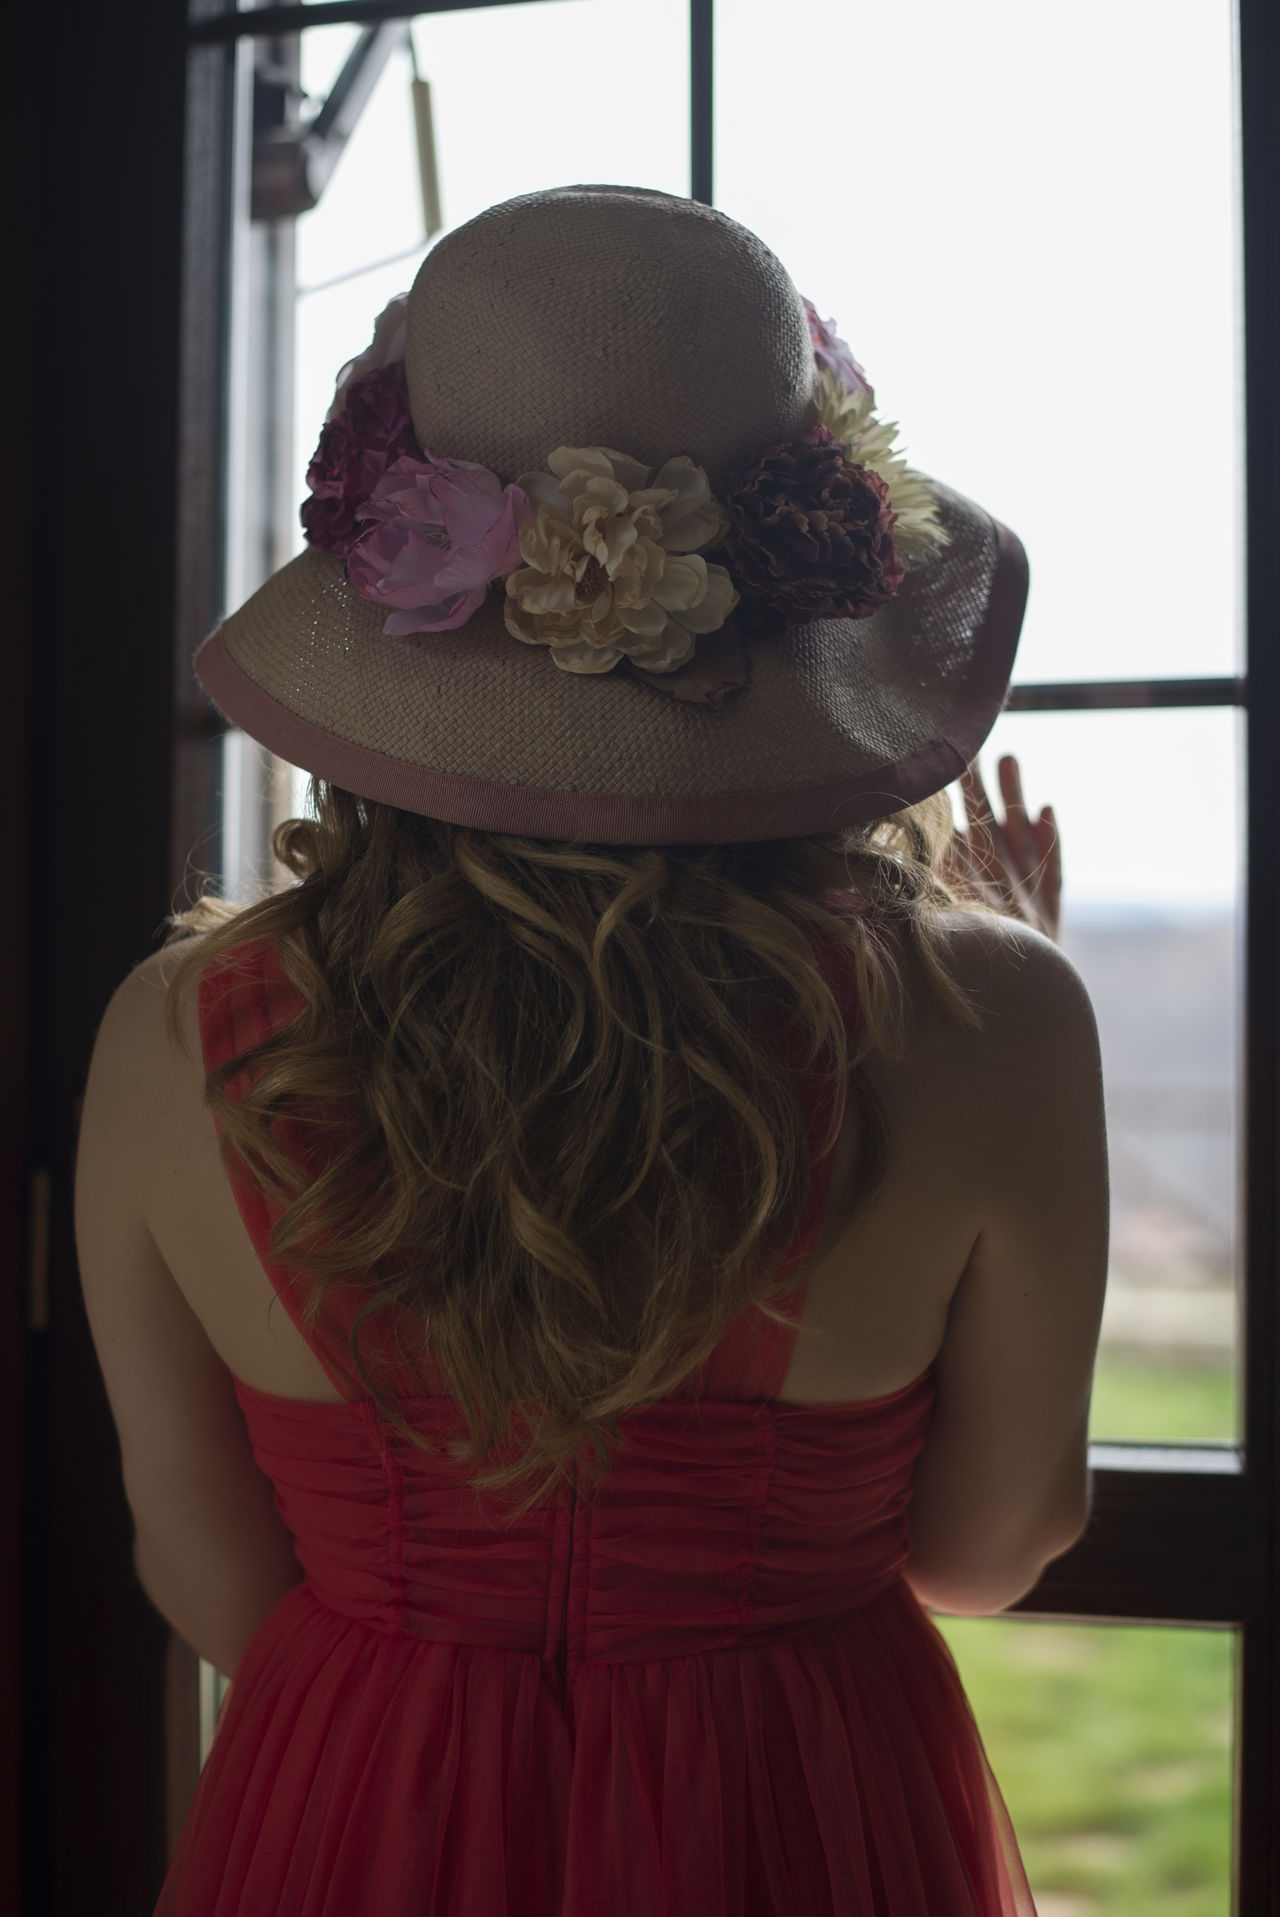 Back To Camera Blonde Decorated Hanging Lamps Flower Inside Looking Outside Red Dress Waiting Window Woman